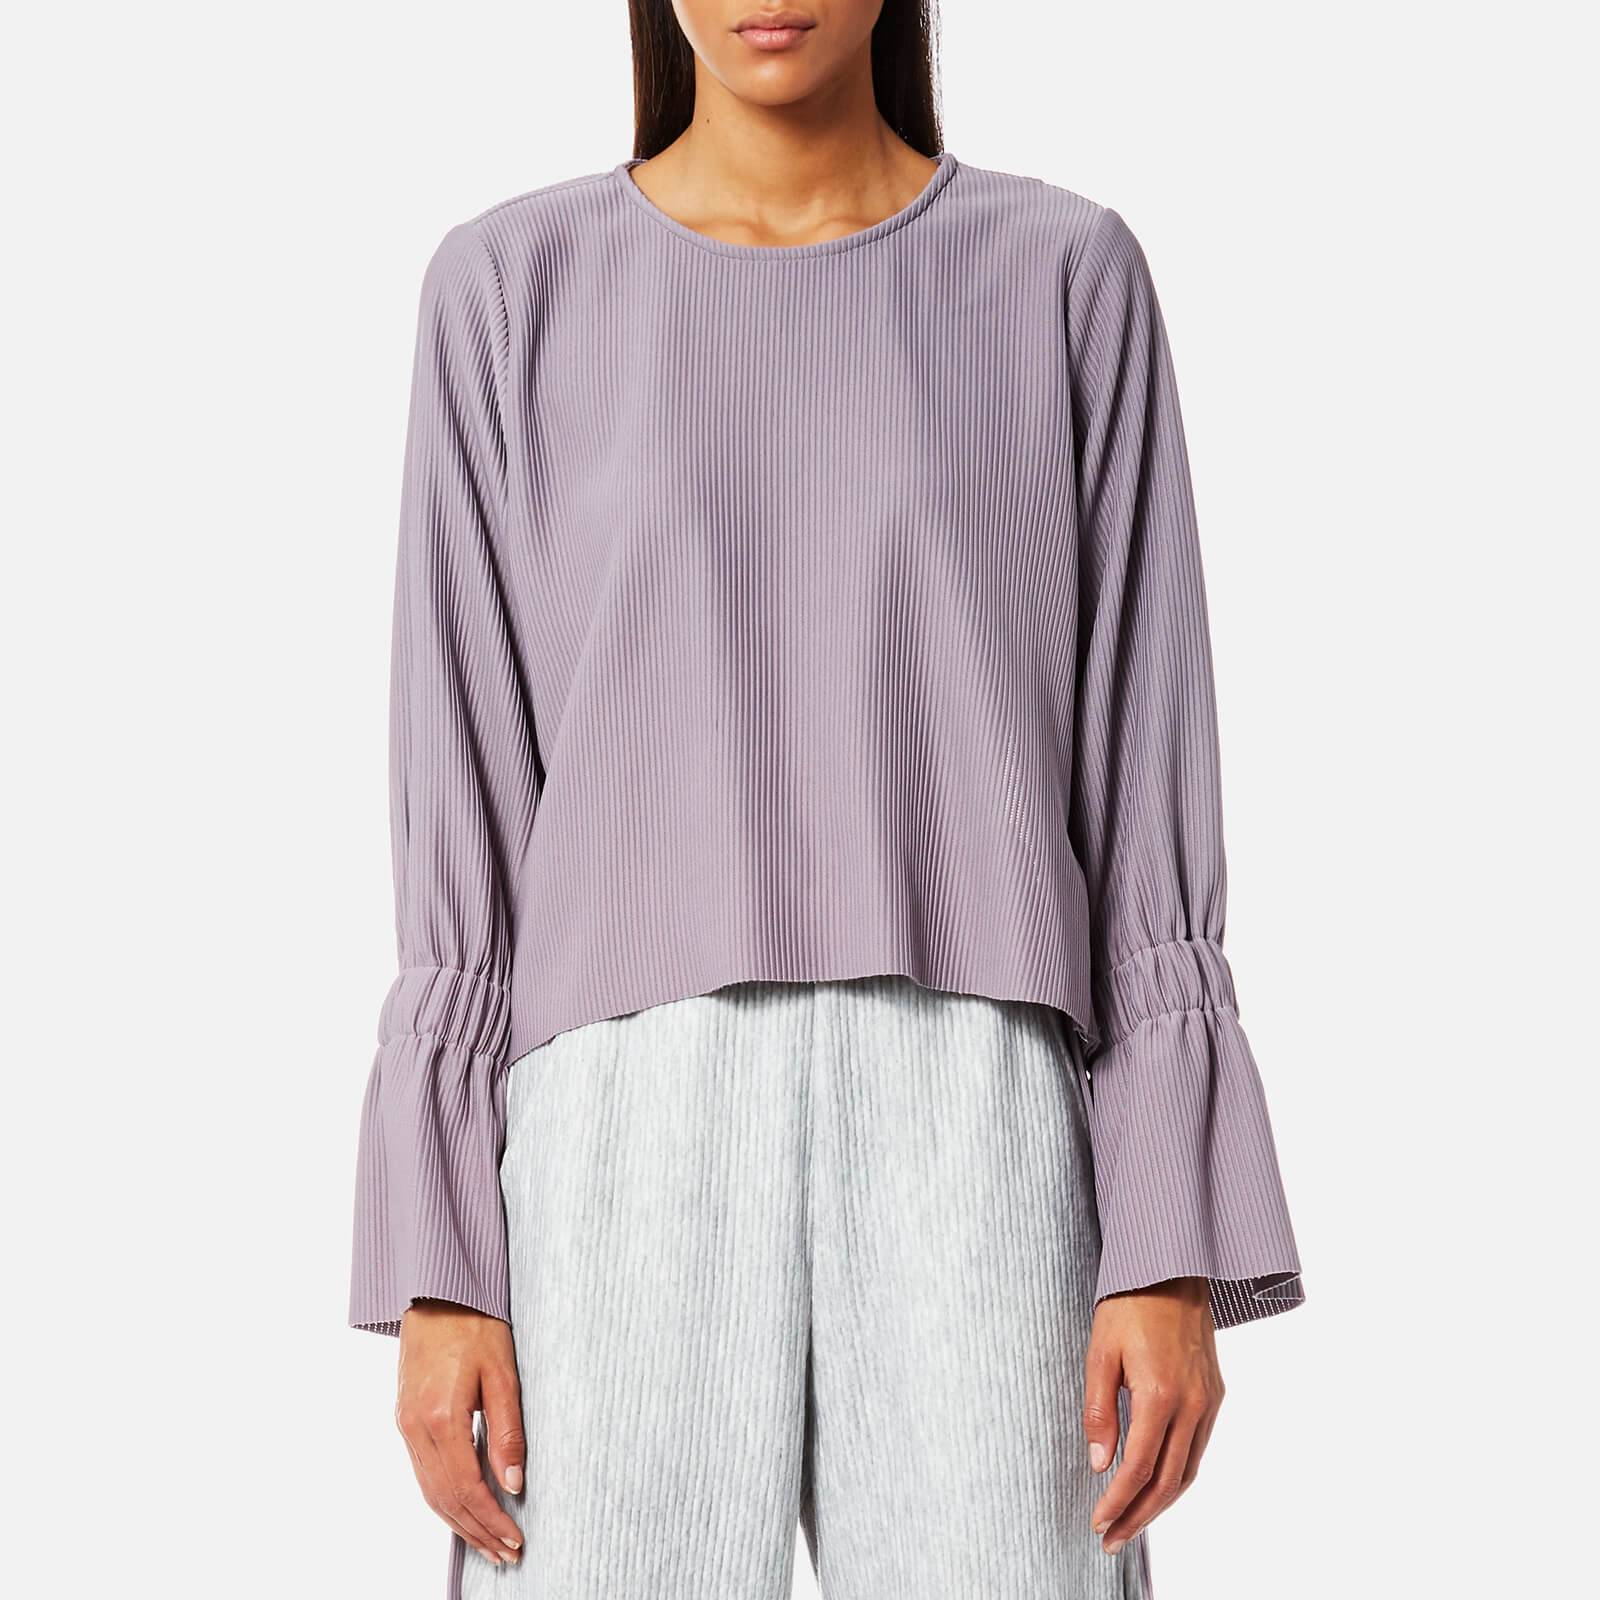 House of Sunny Women's Open Back Top with Flare Sleeves - Sweet Lilac - UK 10 - Purple